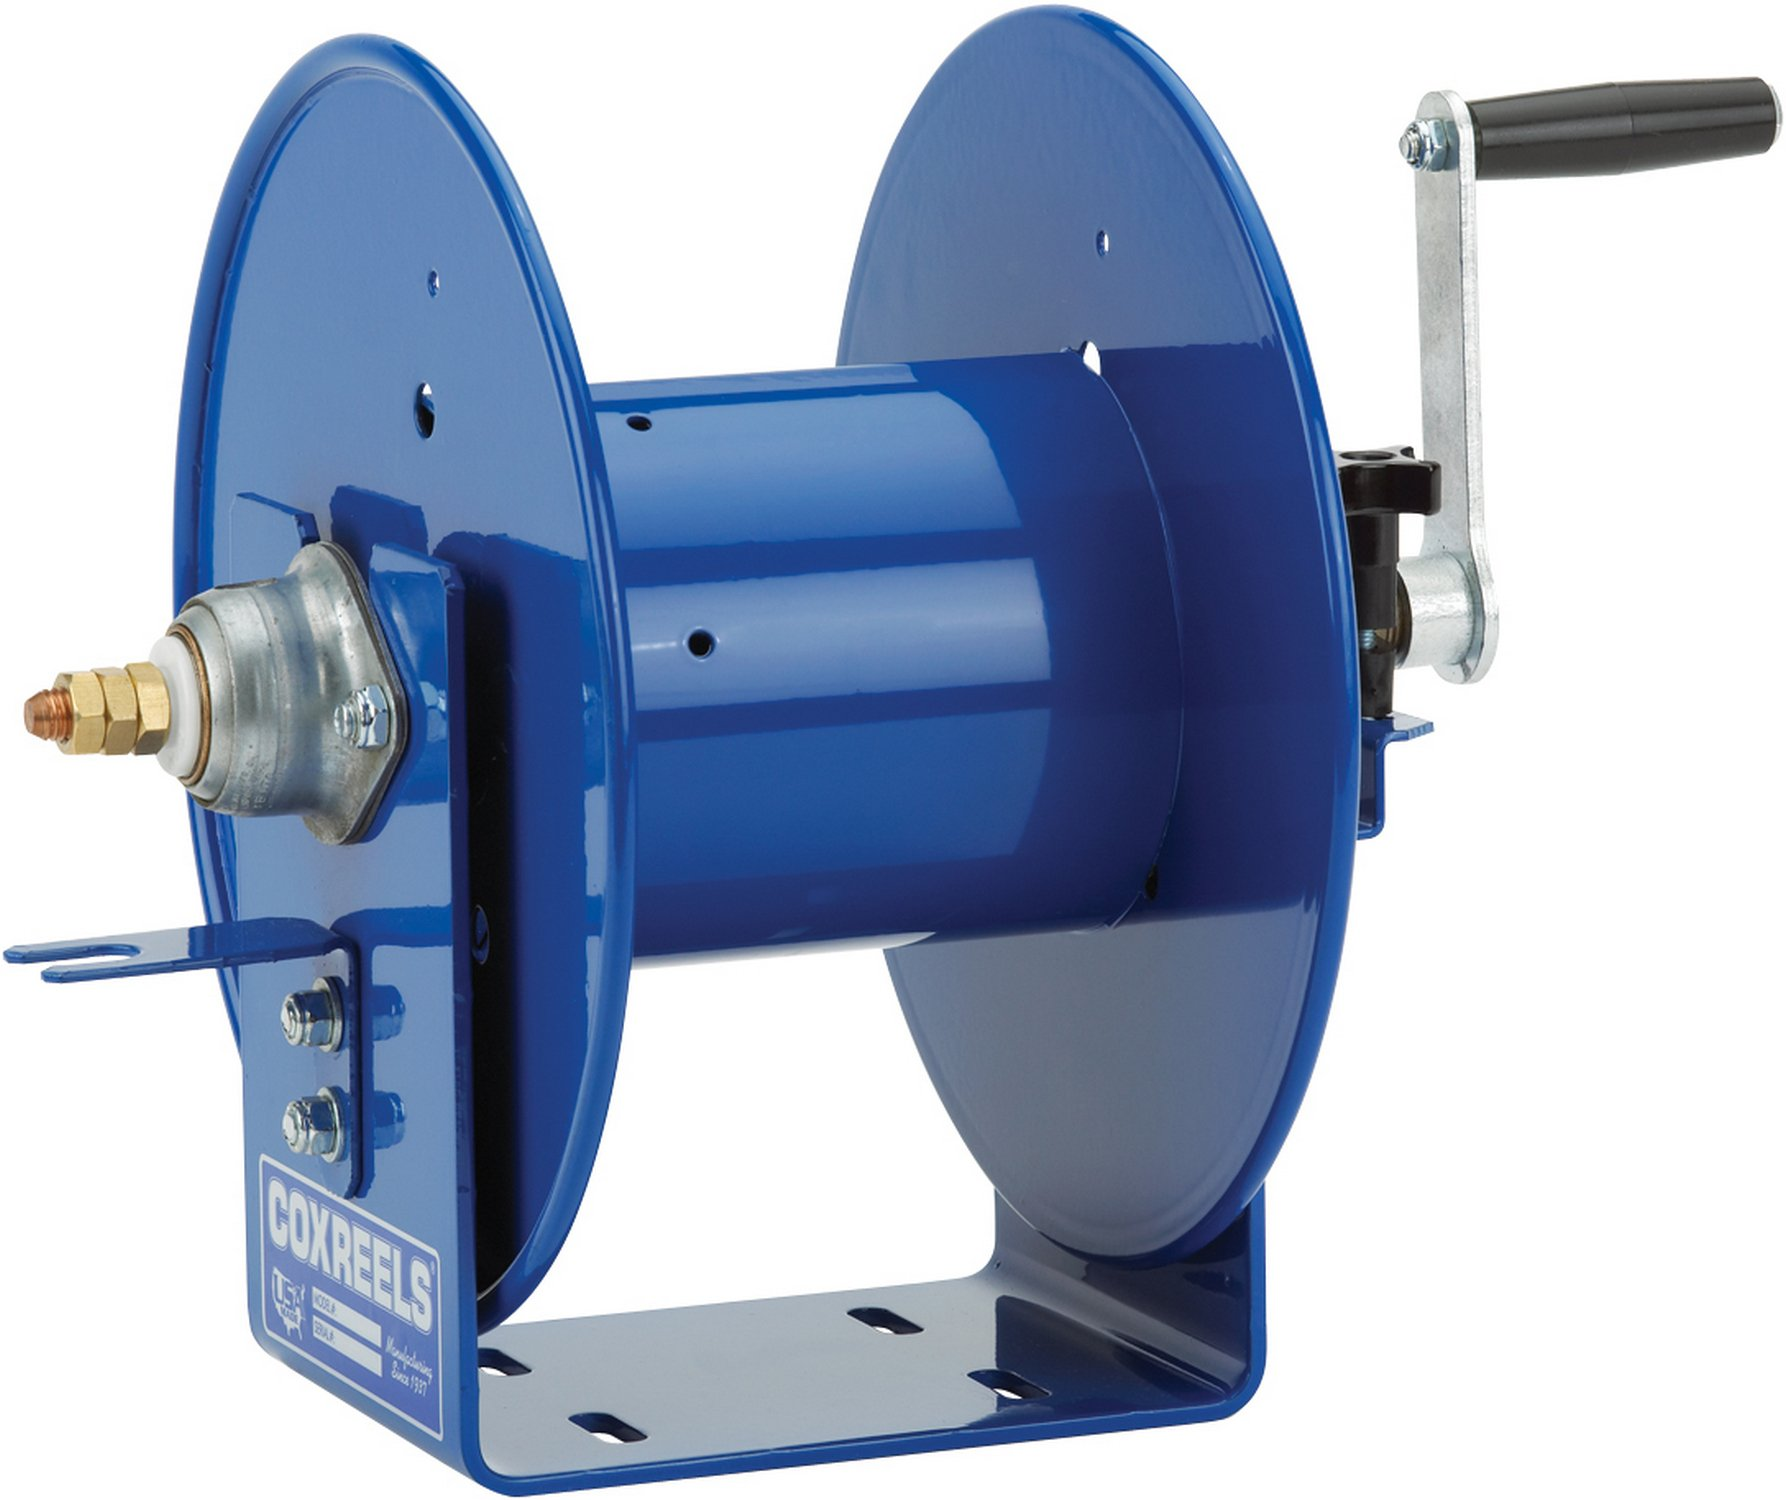 Coxreels 112WCL-6-20 Welding Hand Crank Cable Reel: #2/0 Cable gauge, 100' cable capacity, less cable, 450 Amp